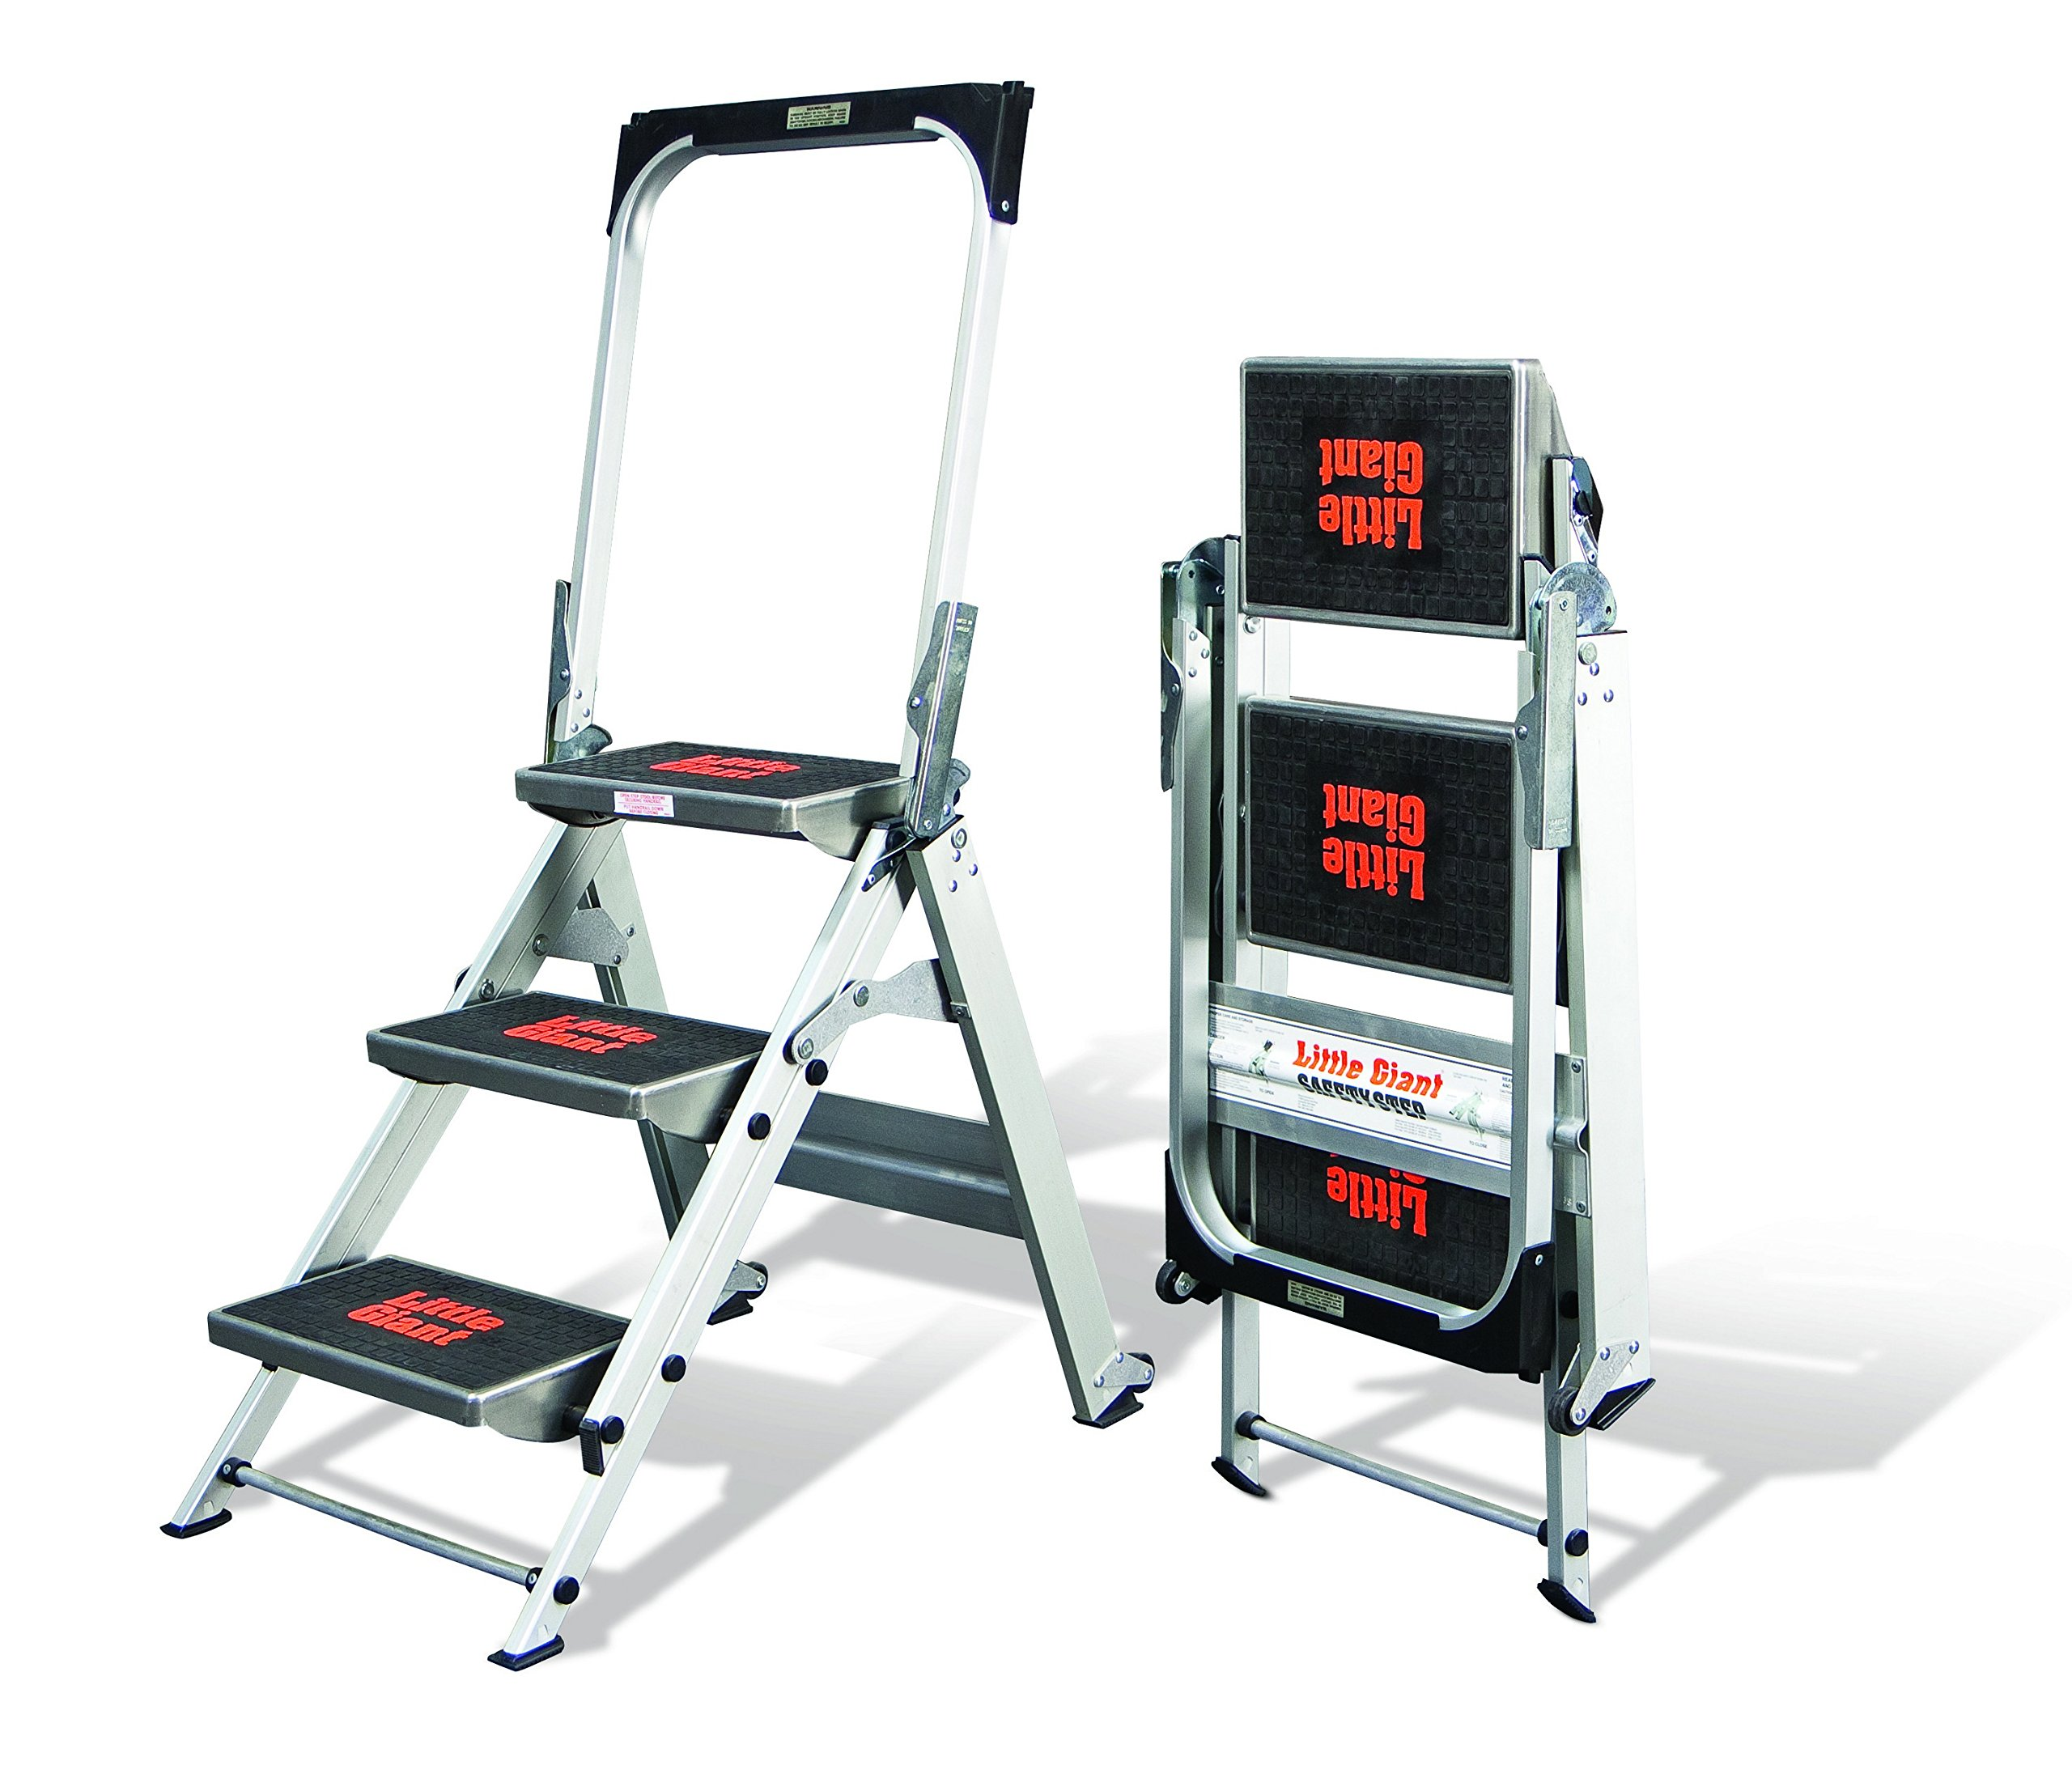 Little Giant, 3 step, Aluminum, 2-1/4 Feet, 300 lb. Capacity Stepladder by Little Giant Ladder Systems (Image #2)